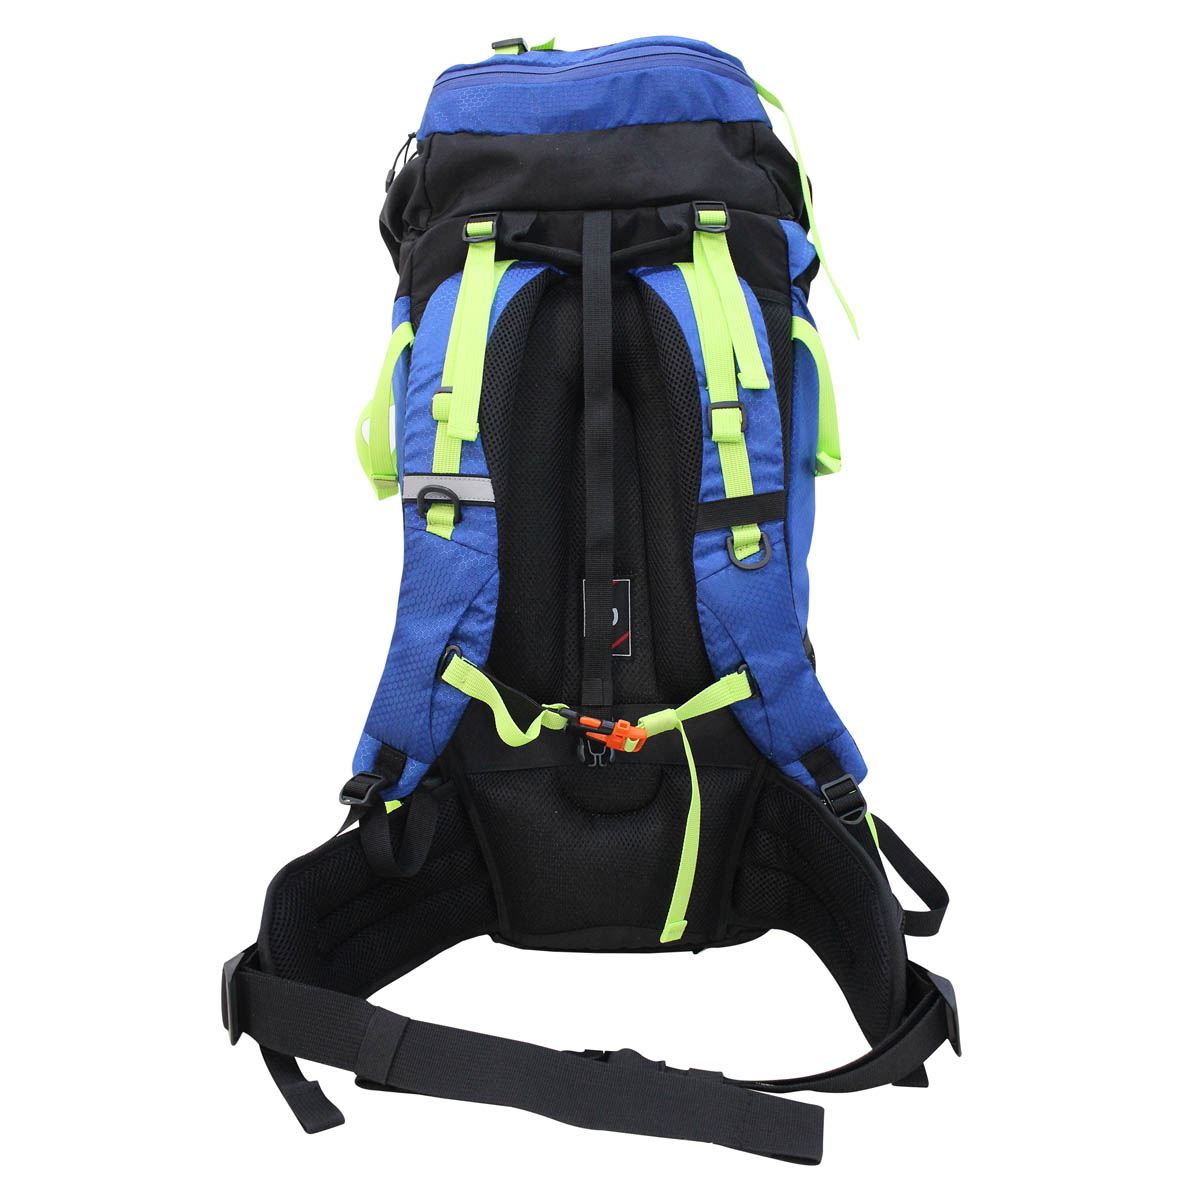 Camping bag ie-15105 black/blue/green  - Sanborns